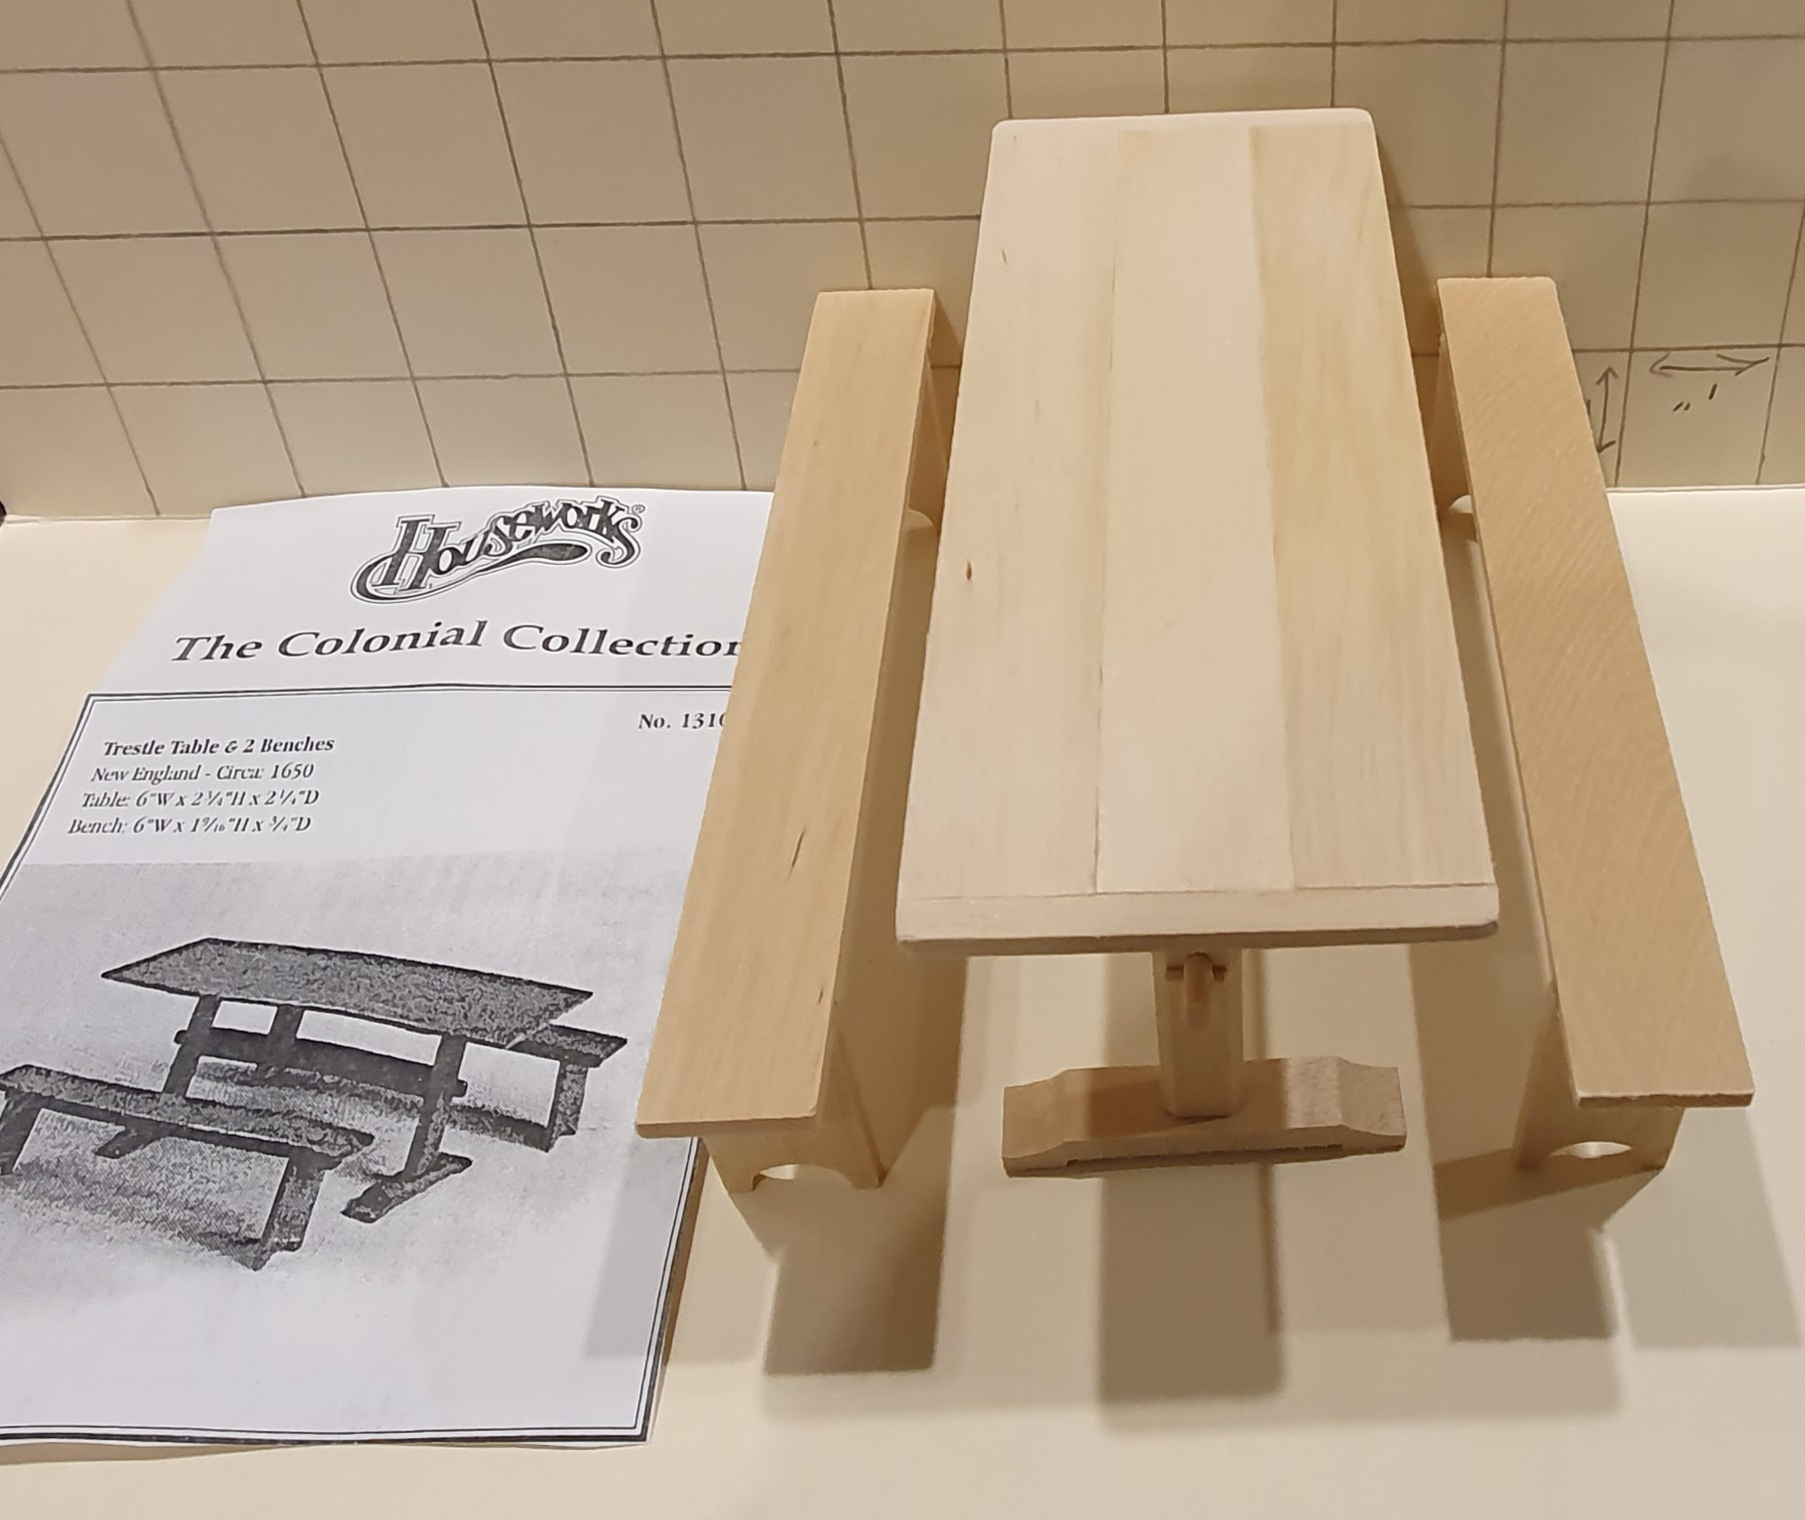 HW13106 Trestle table (kit) $25